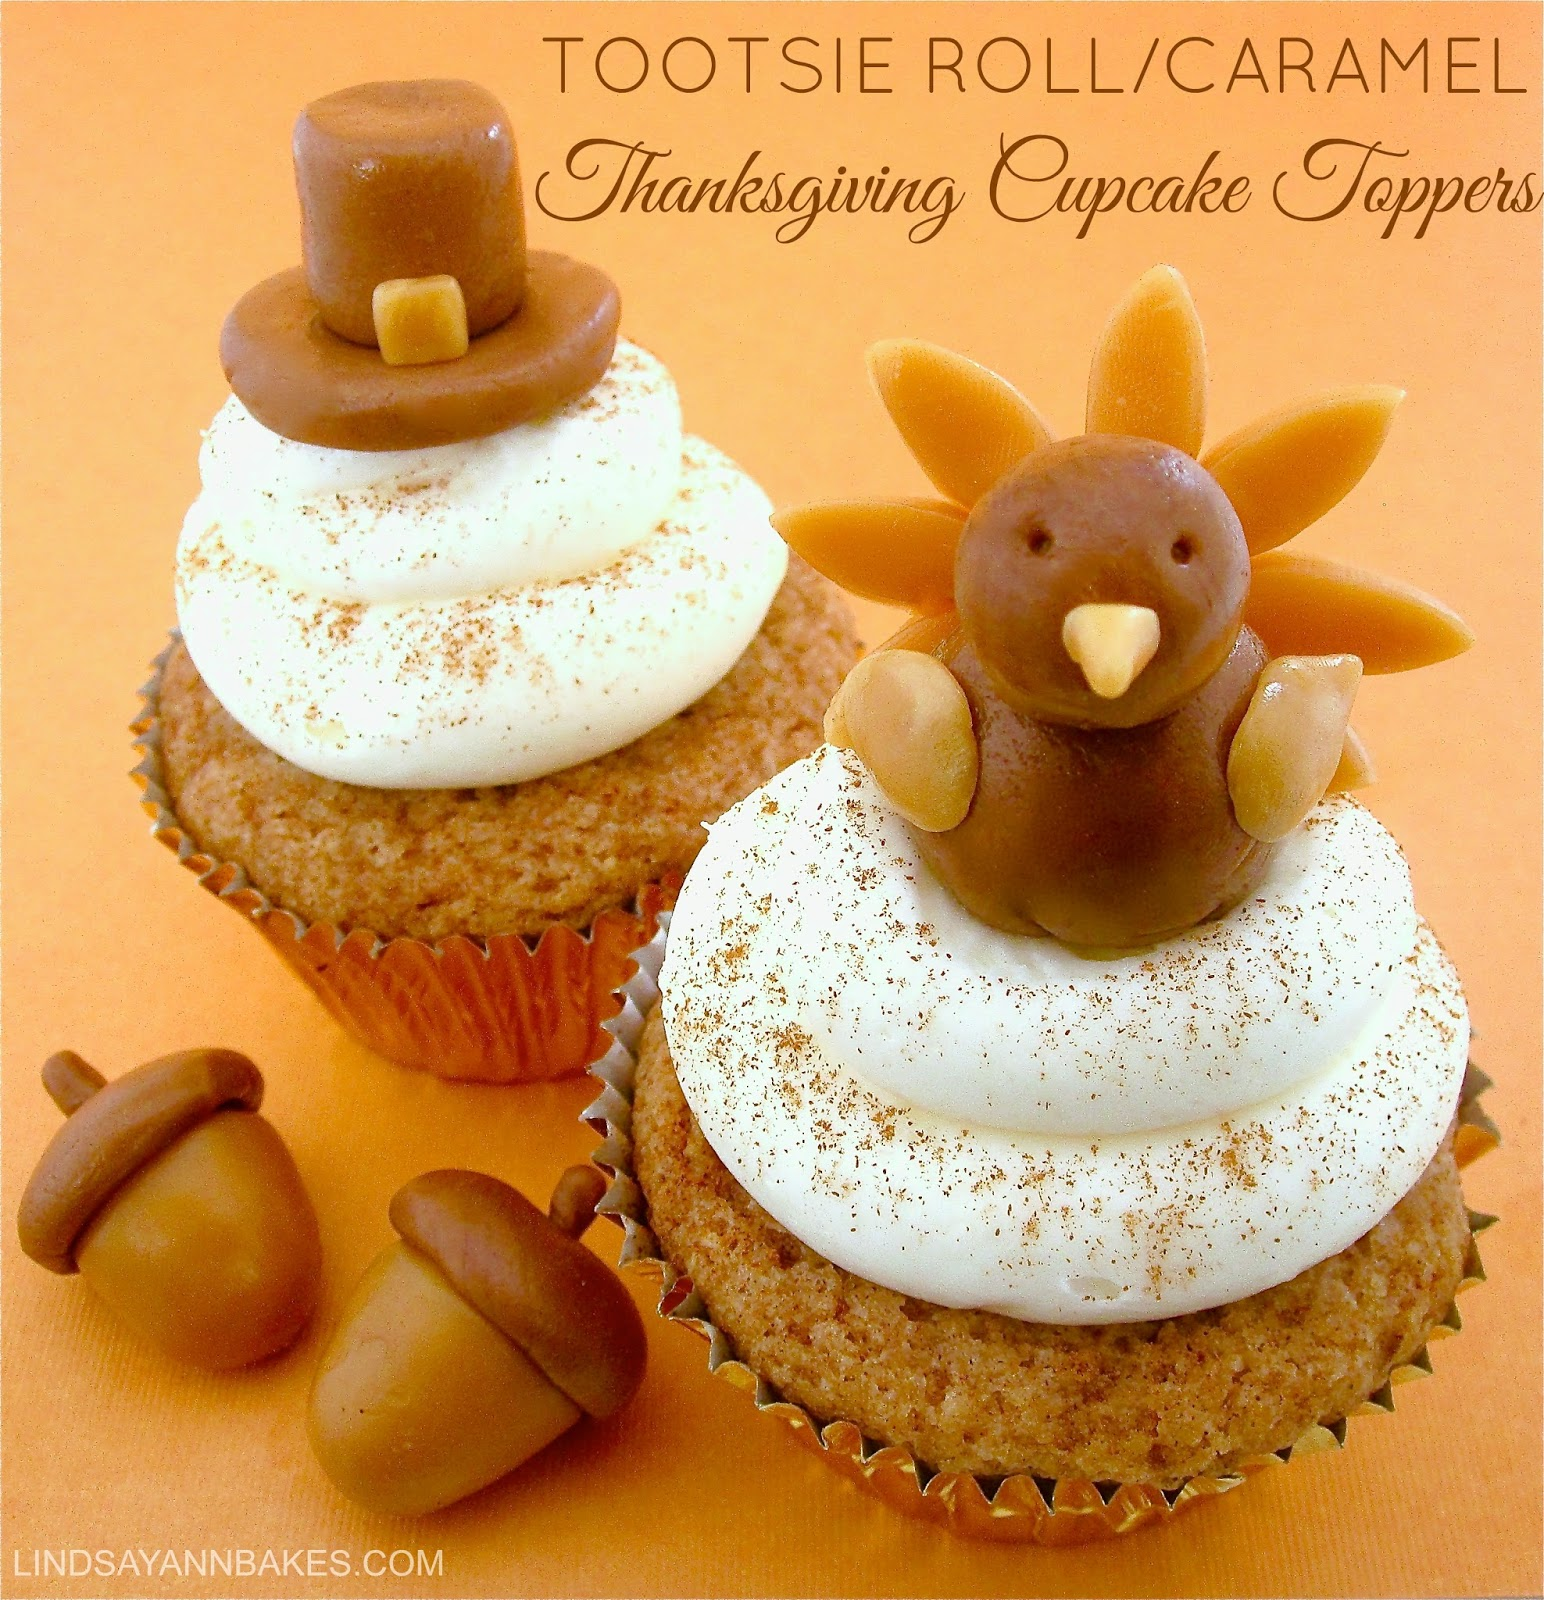 Tootsie Roll Caramel Thanksgiving Cupcake Toppers